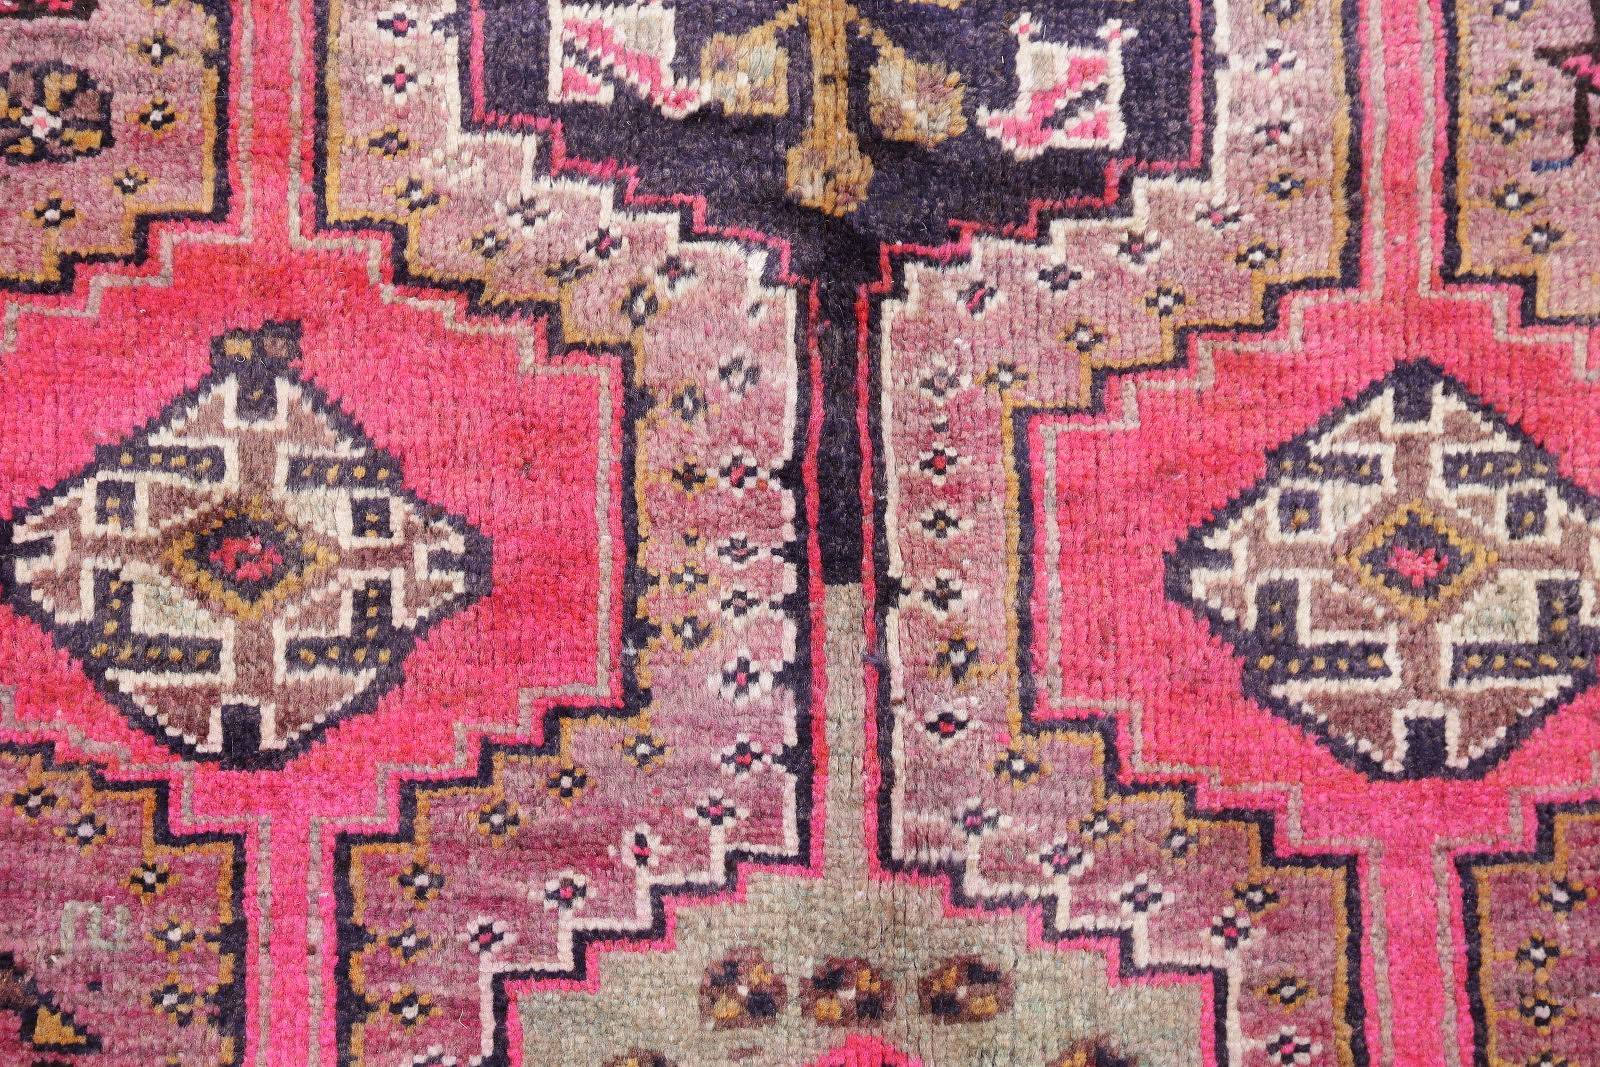 Pink Tribal Geometric Lori Persian Hand-Knotted 3x6 Wool Runner Rug